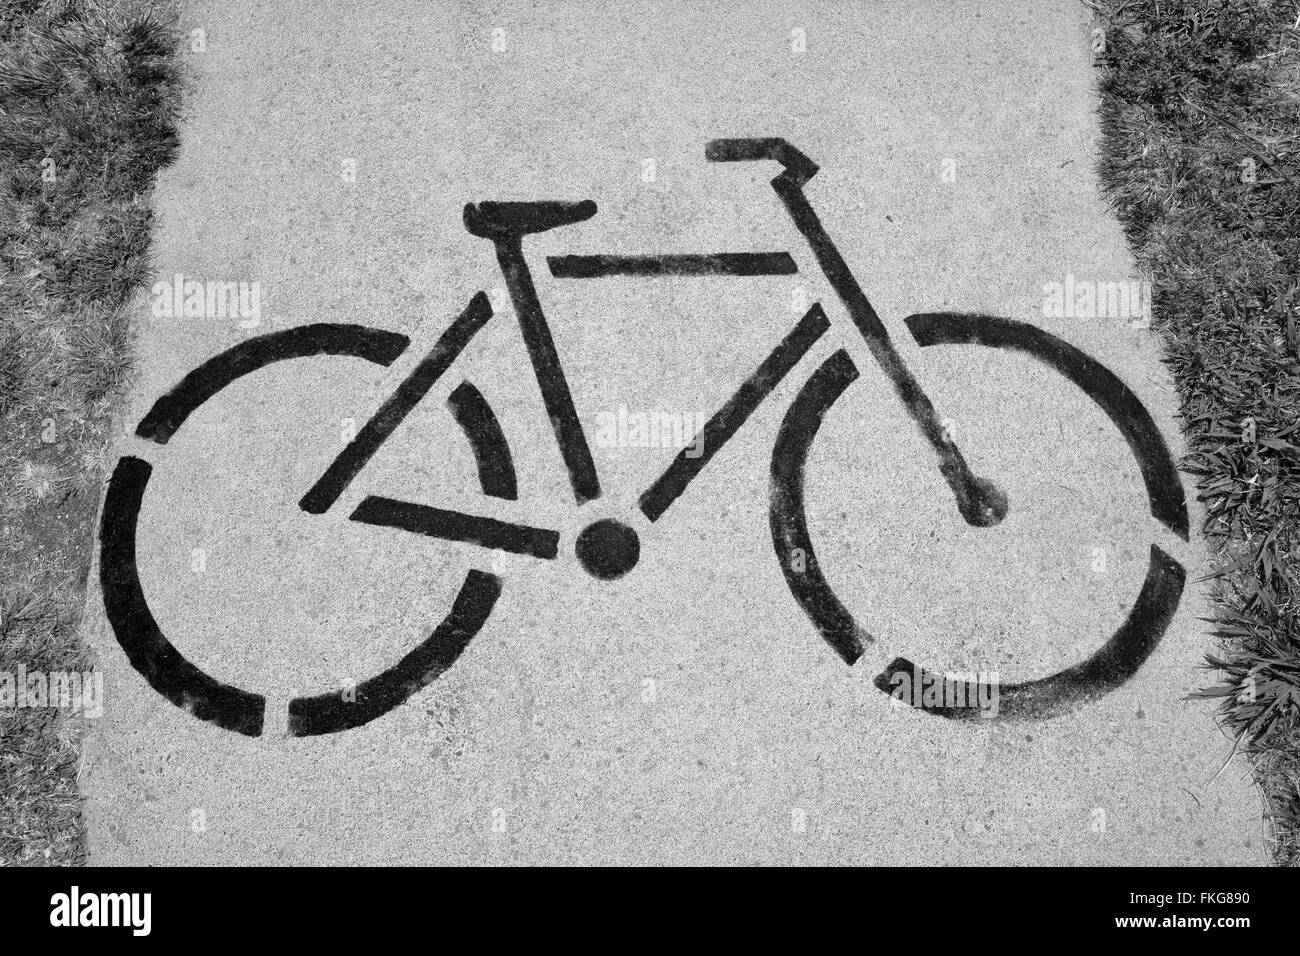 Bicycle sign of cycle trail on the road of bike path. - Stock Image